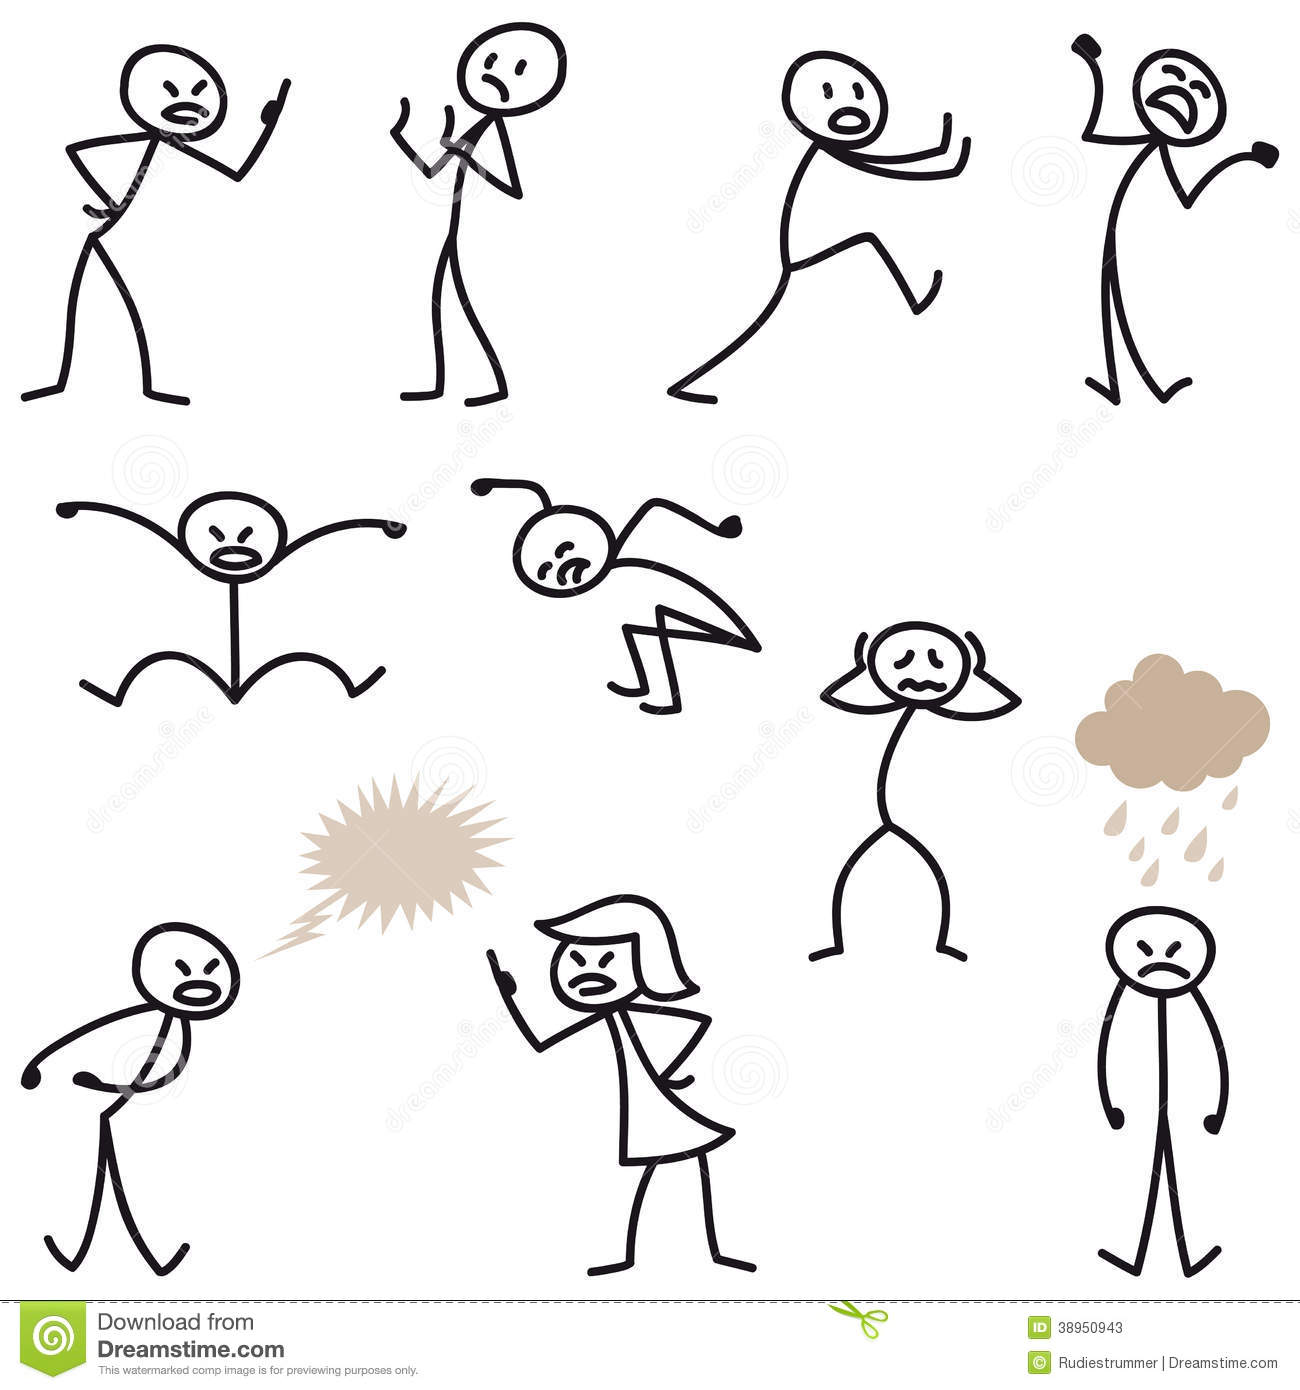 7 Stick Figure Vector Images